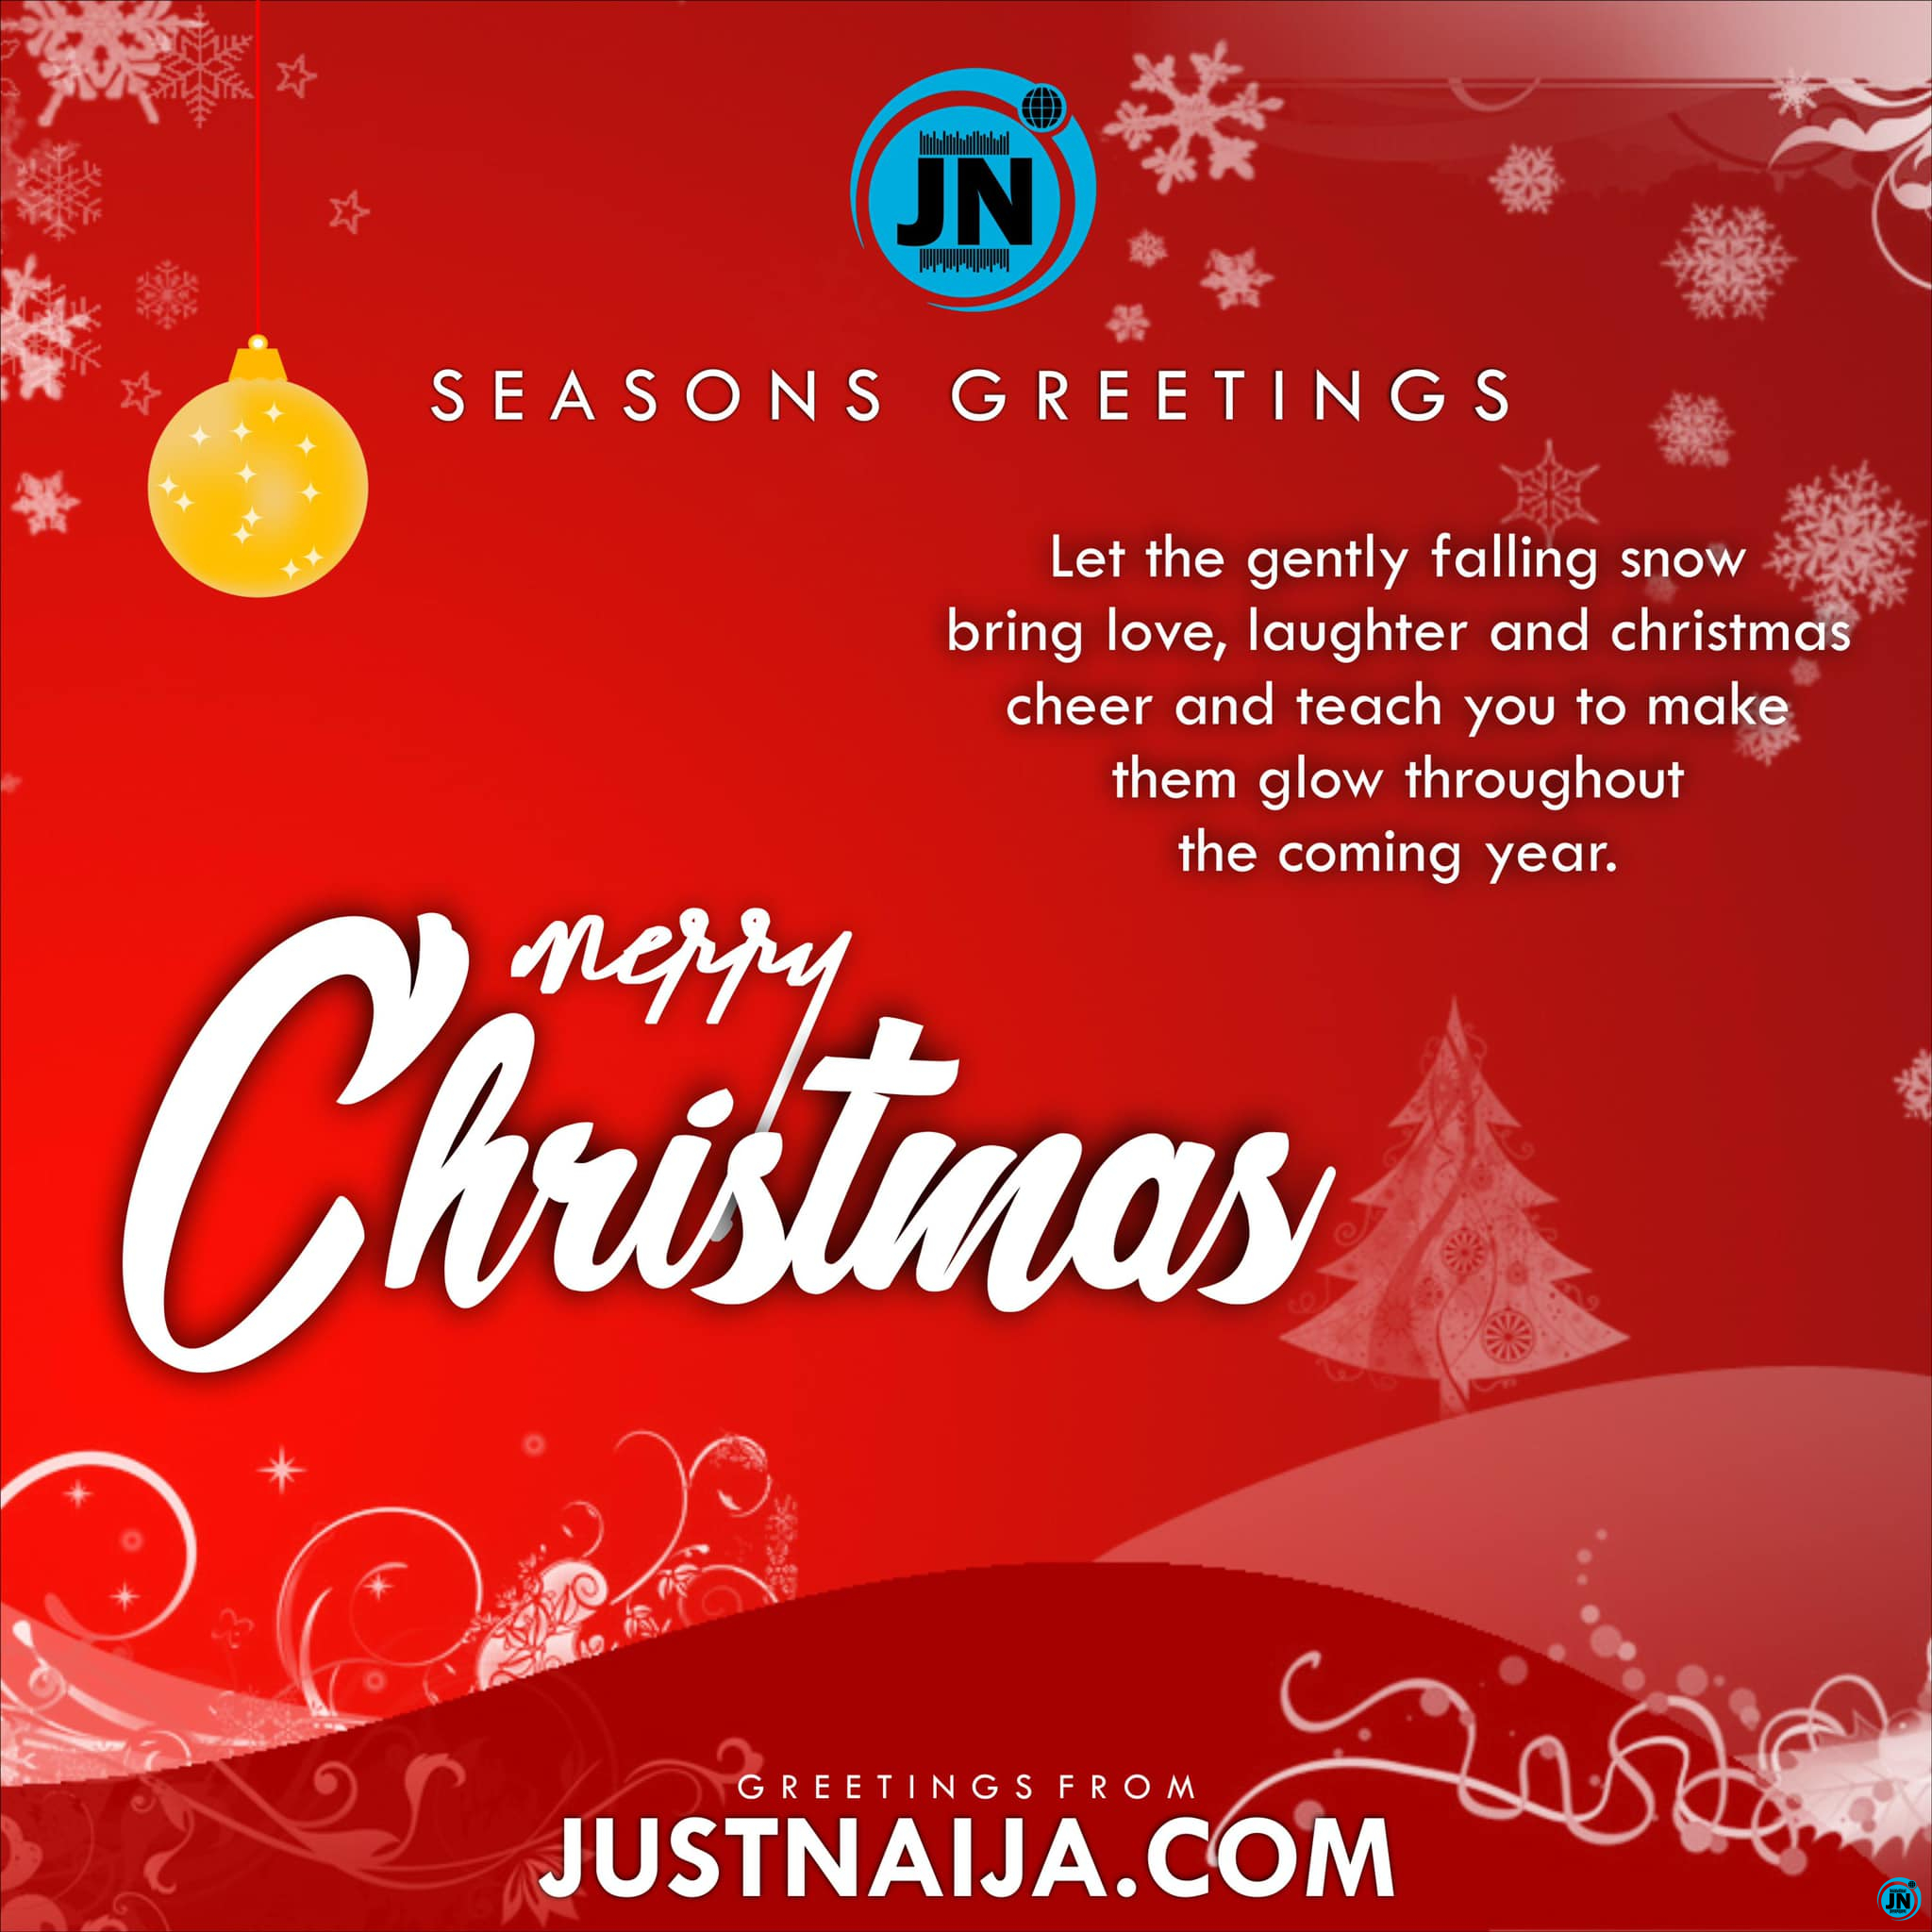 Merry Christmas To Y'all, From All Of Us At JustNaija